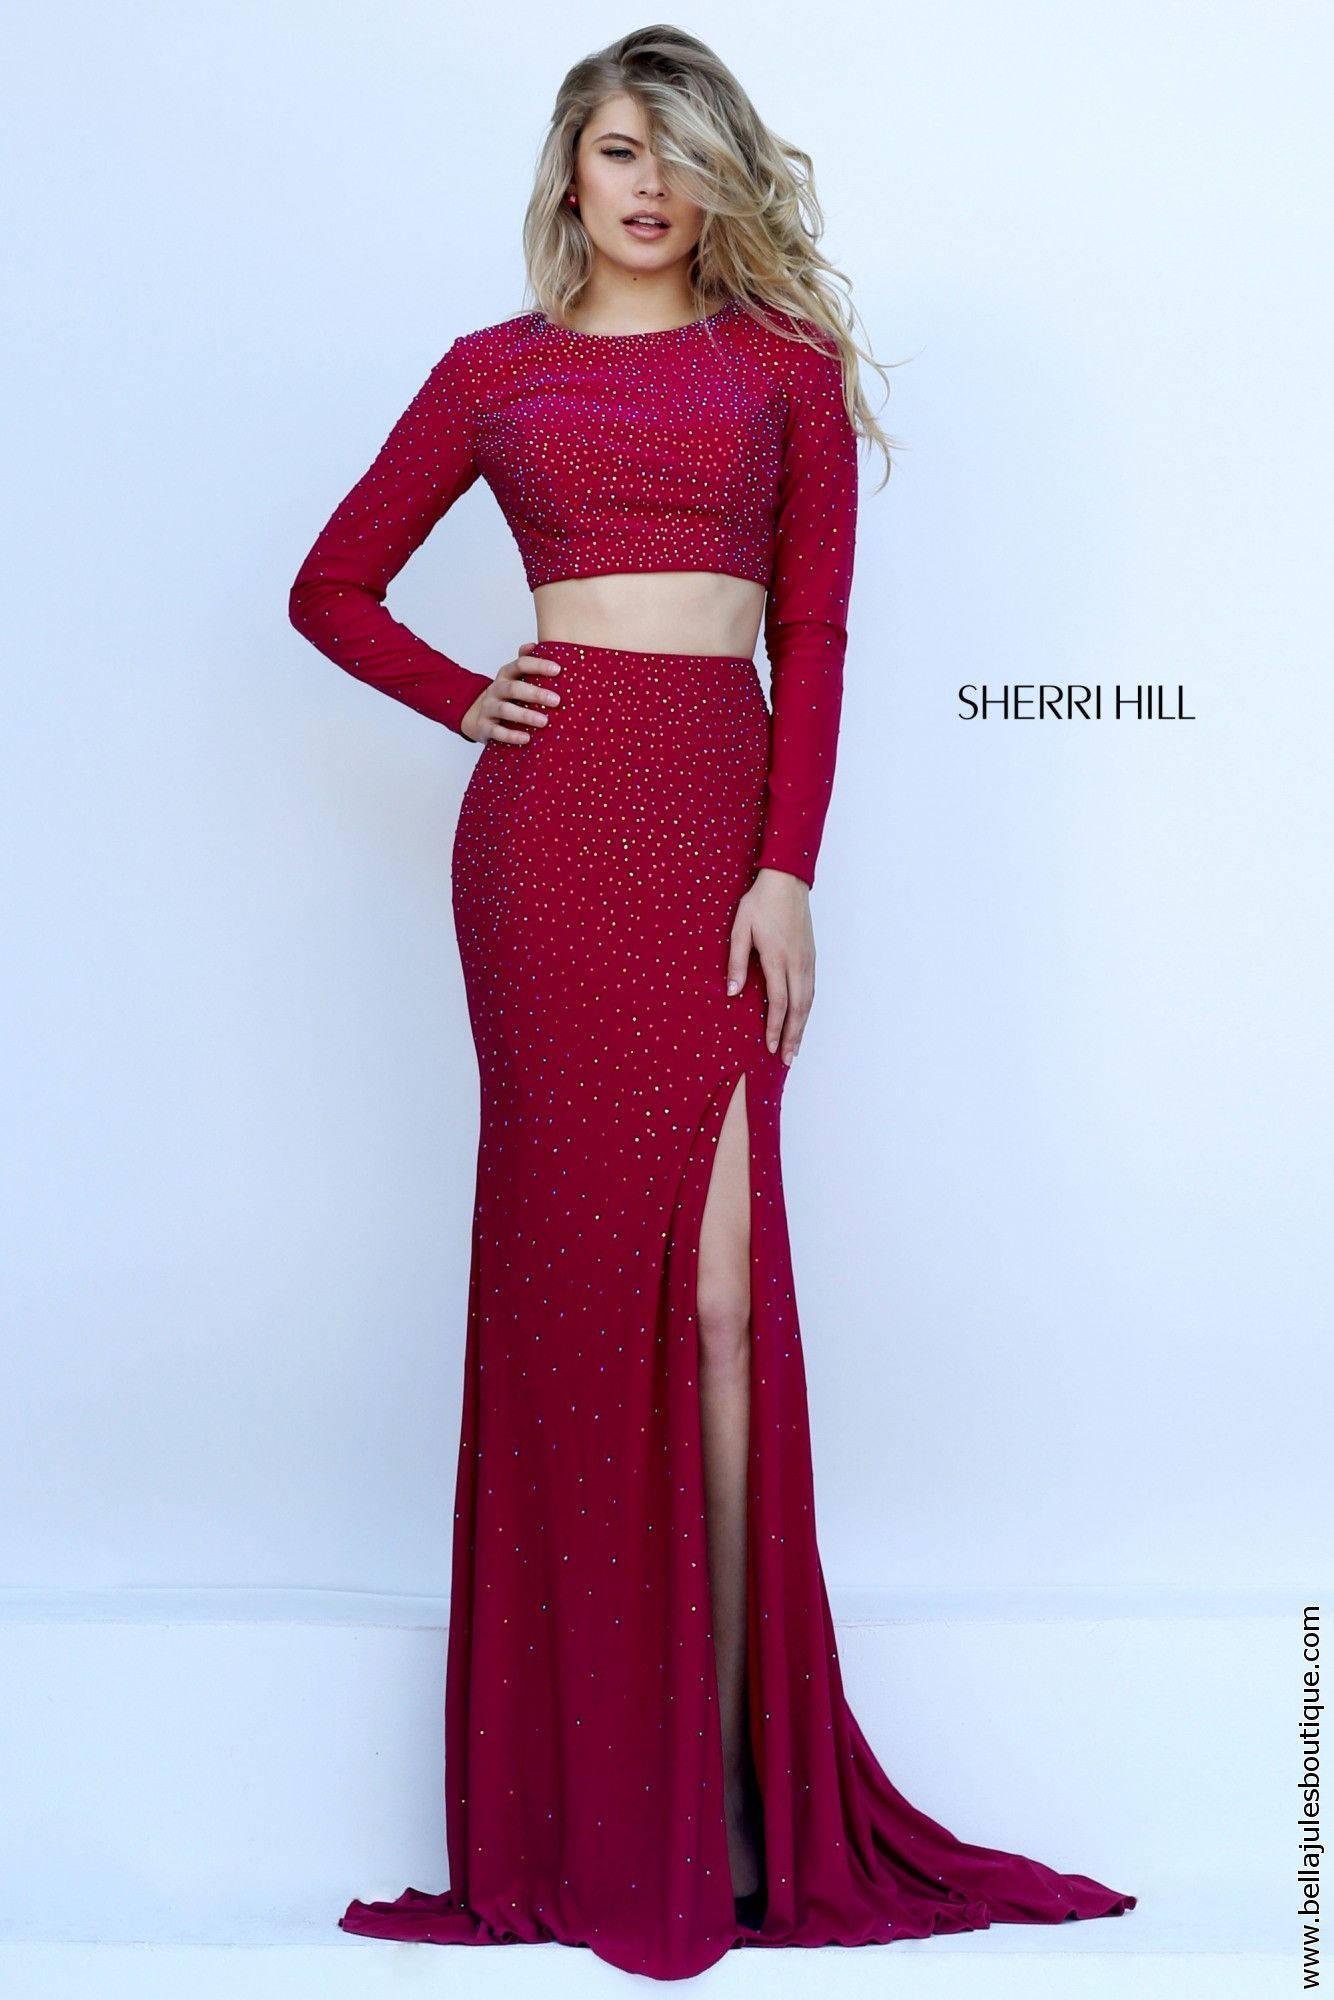 Sherri hill prom dress style prom dresses pinterest